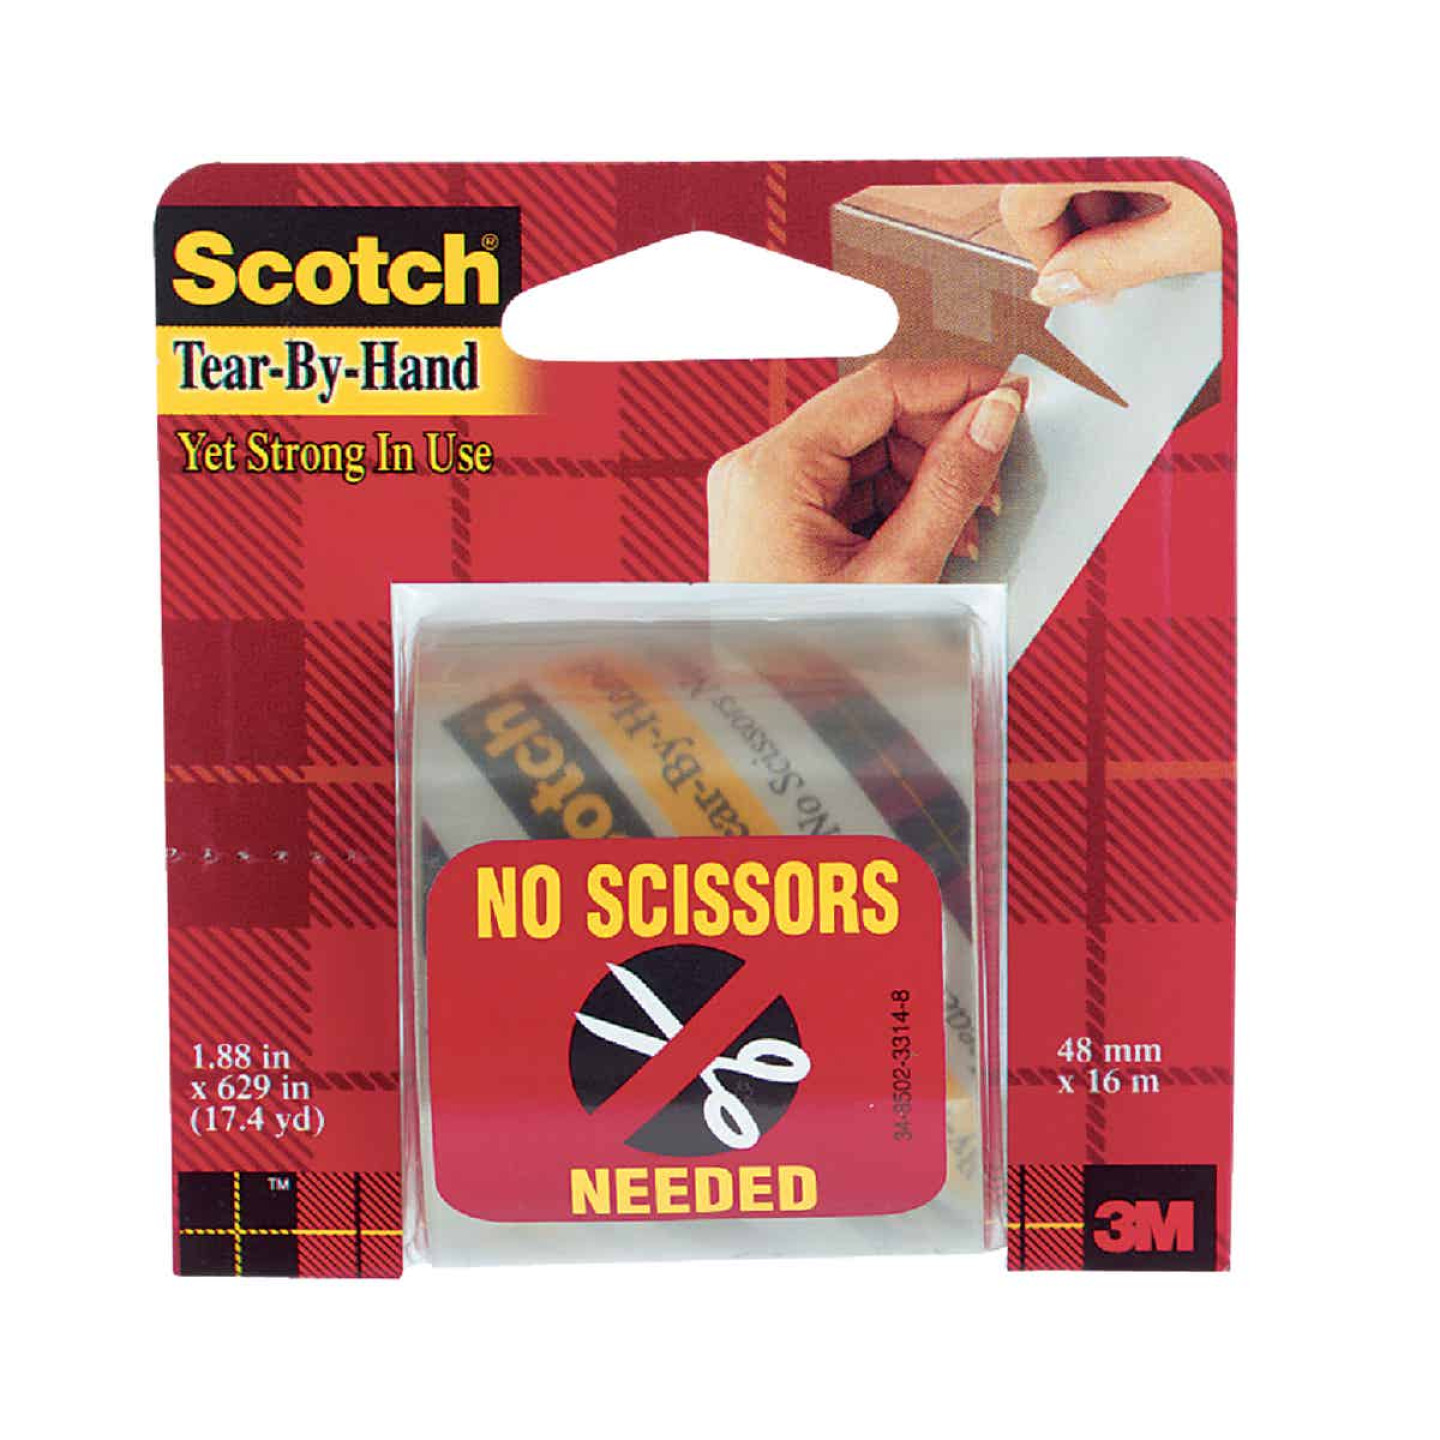 3M Scotch 2 In. X 17 Yd. Tear by Hand Tape Image 1